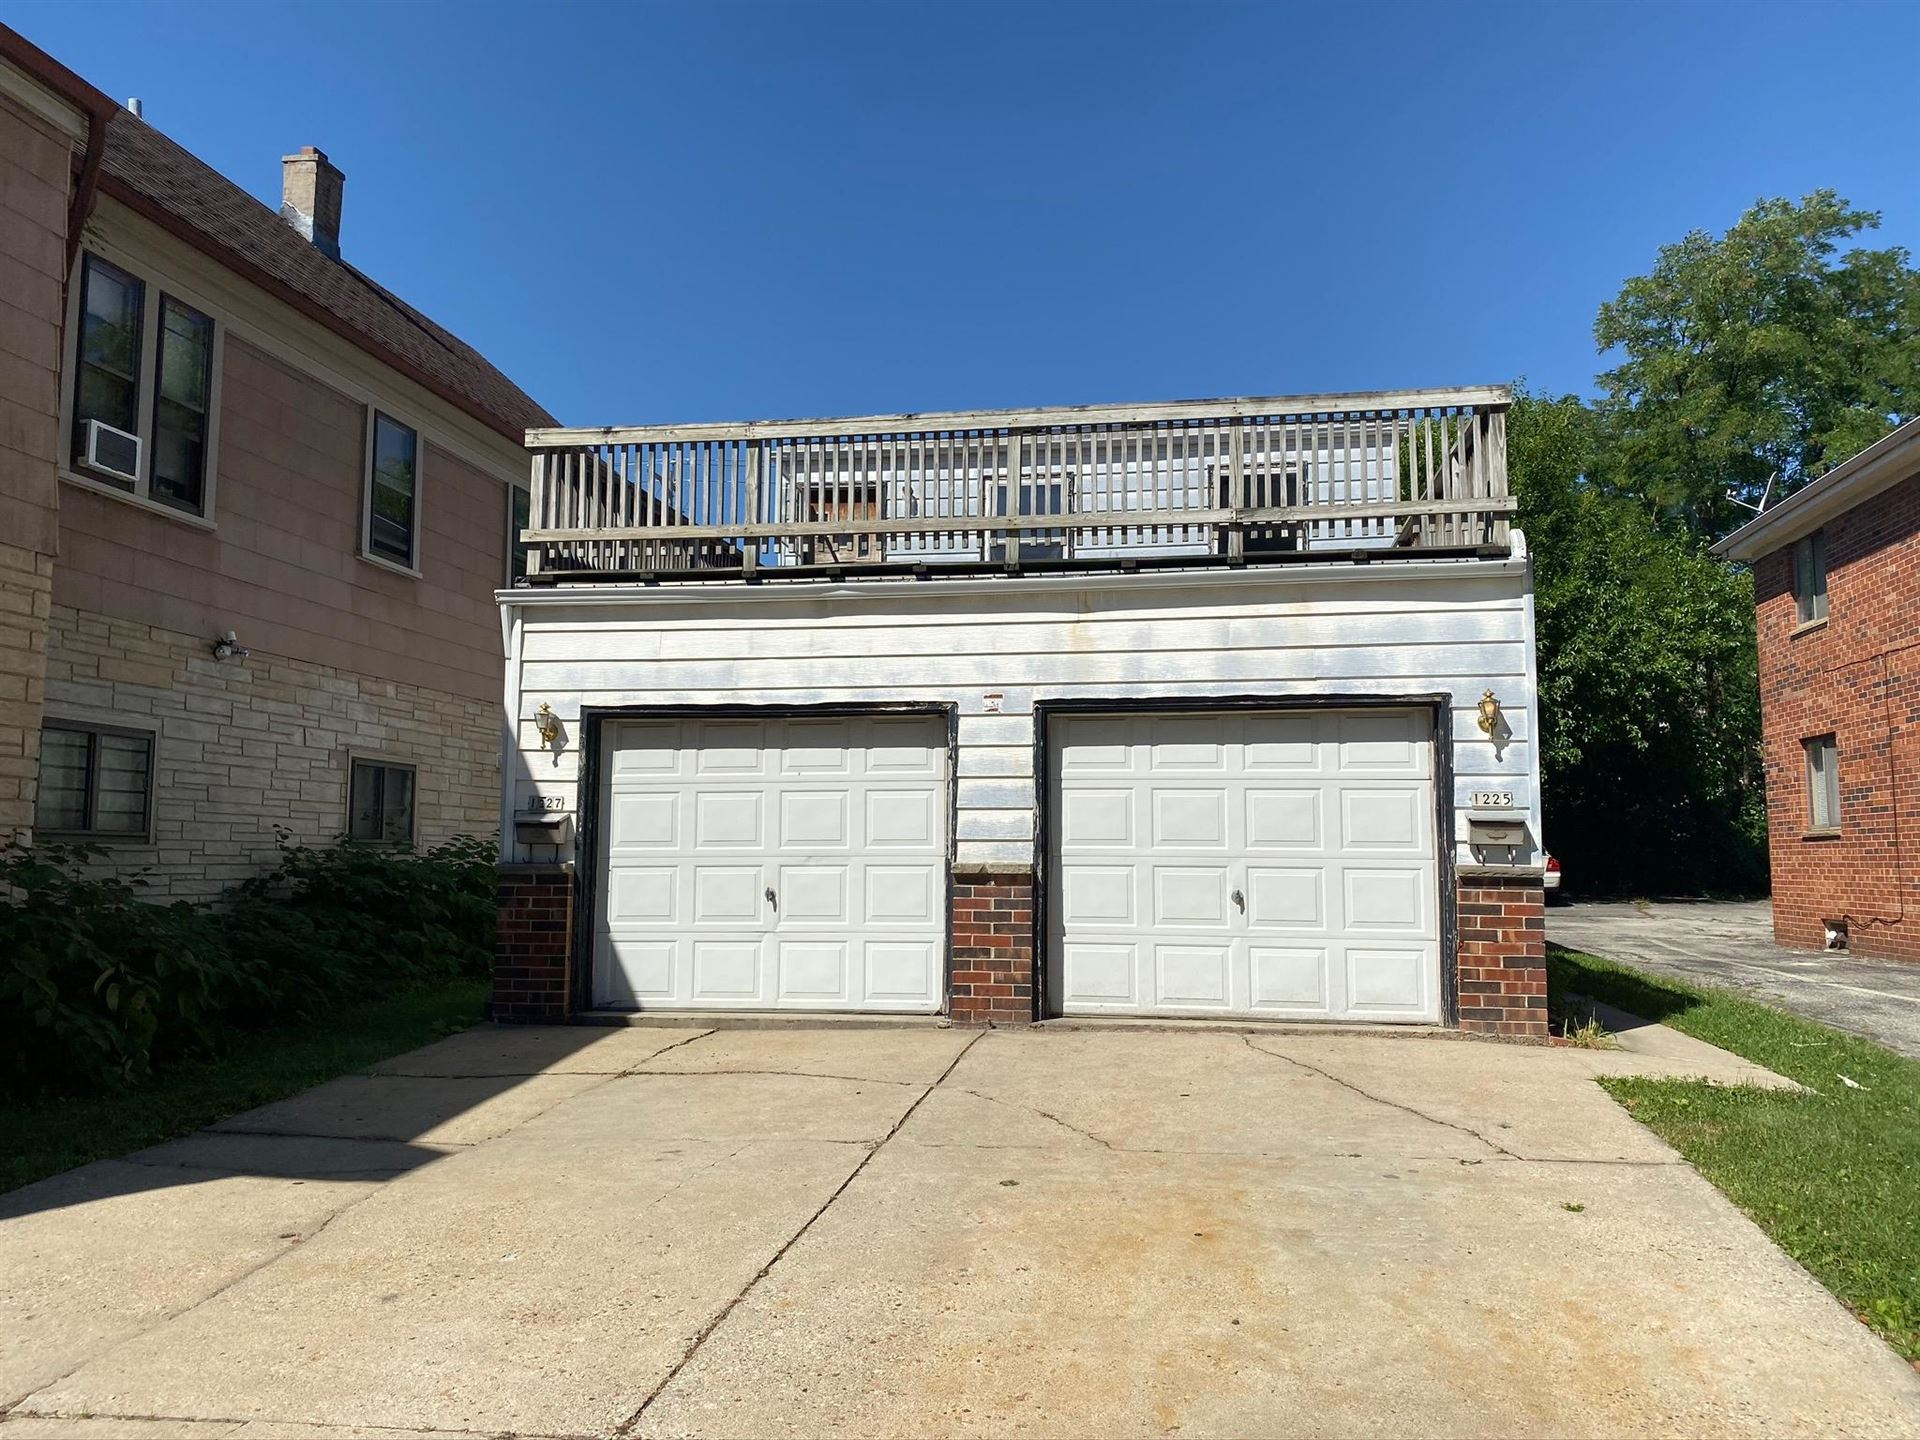 1225 S 62ND ST #1227, West Allis, WI 53214 - #: 1703750